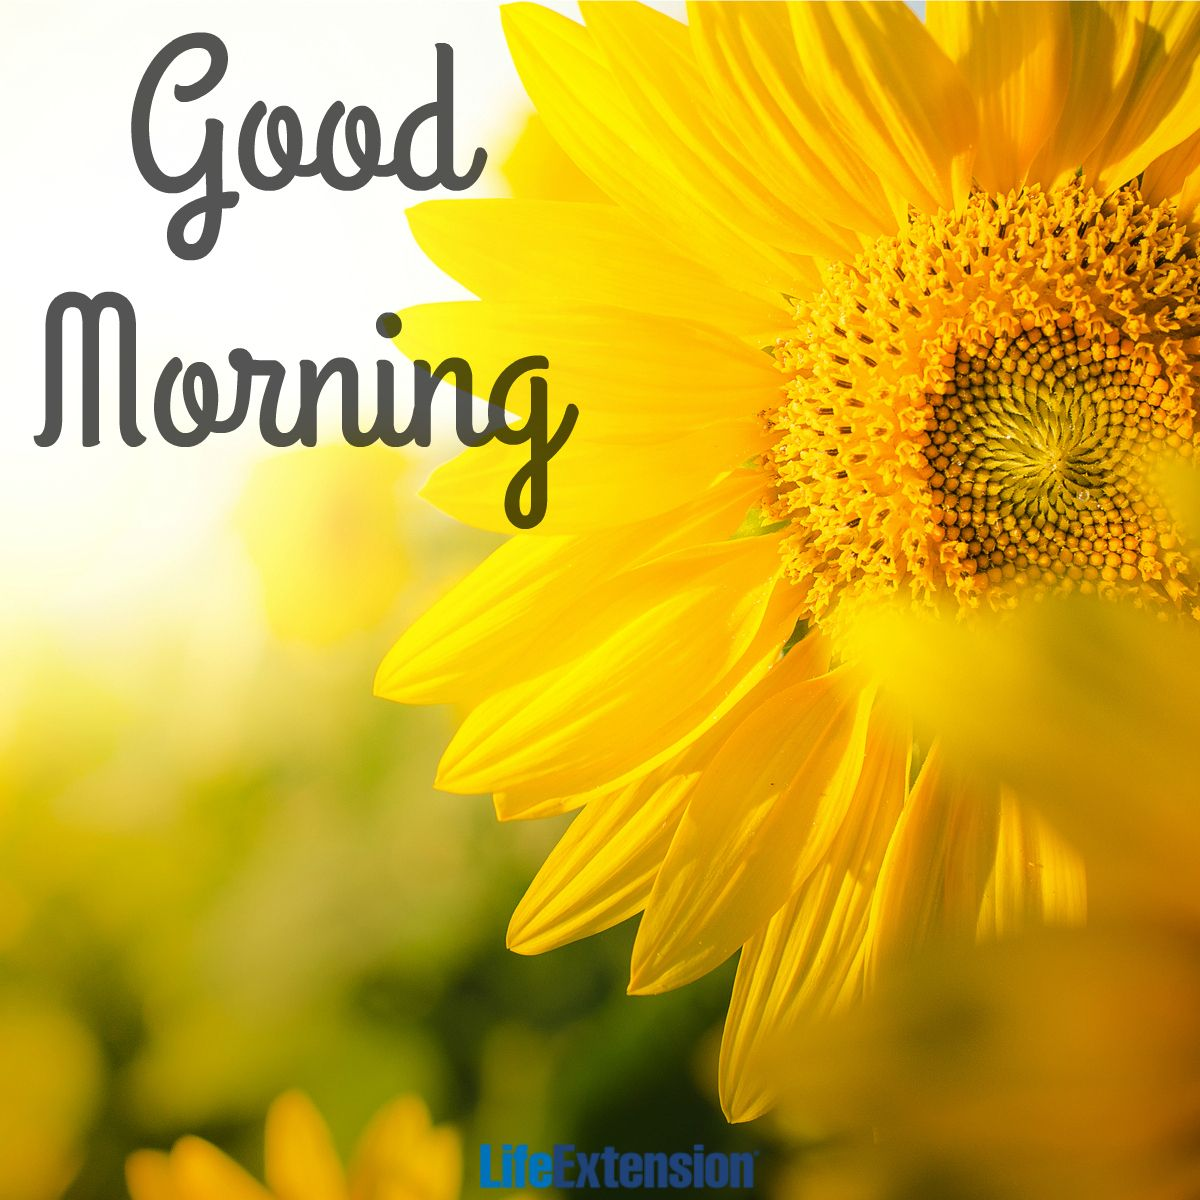 Good Morning Happy Life Quotes: Good Morning & Happy Monday From All Of Us Here At Life